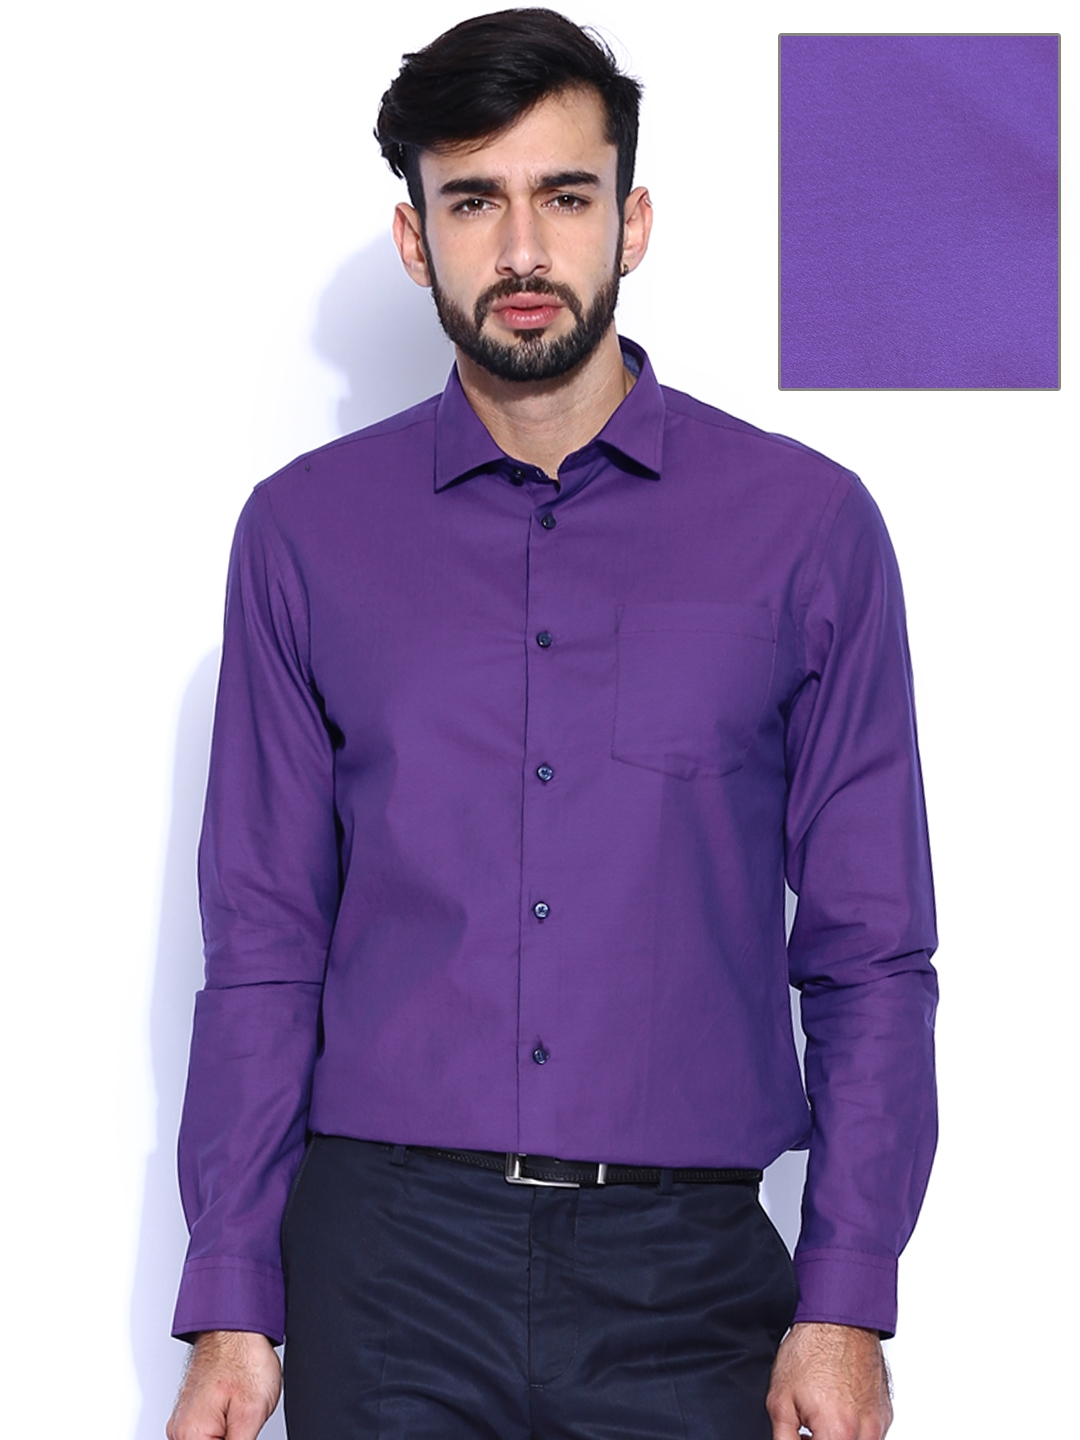 119ebc51f70 Buy Arrow New York Purple Slim Fit Formal Shirt - Shirts for Men ...